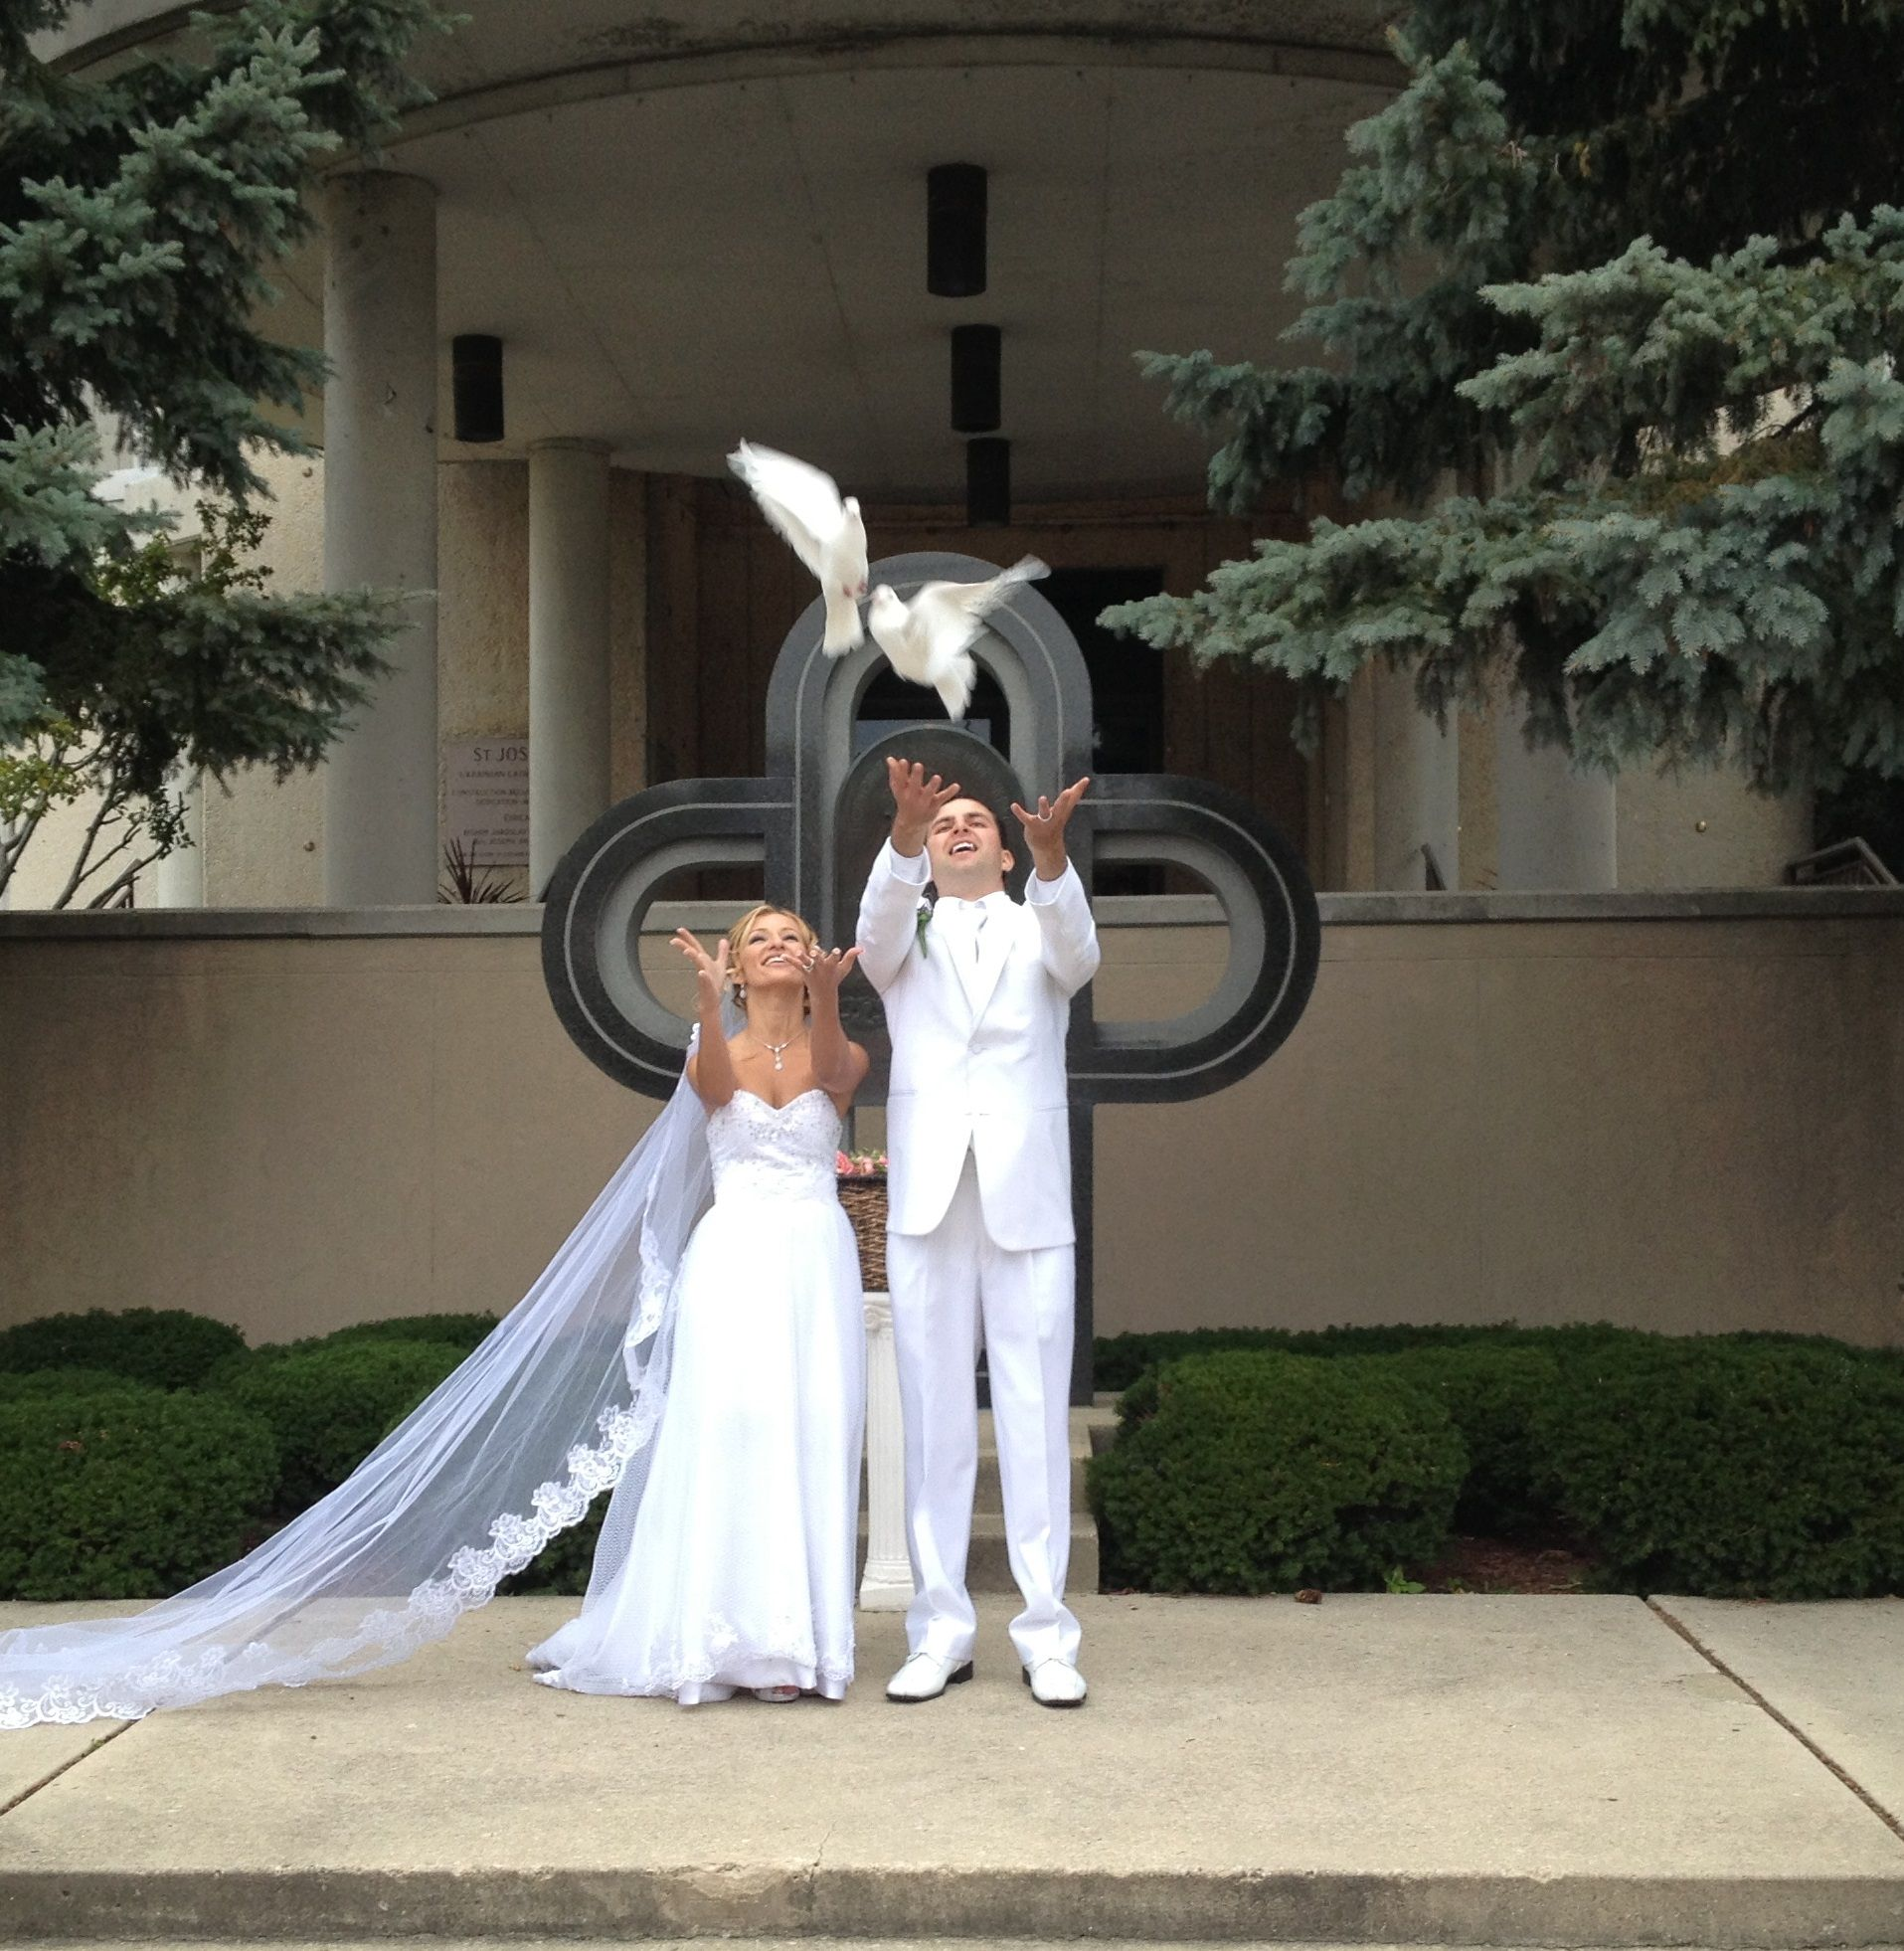 Add A Unique And Memorable Touch To Your Wedding With White Dove Release Contact Michaleen